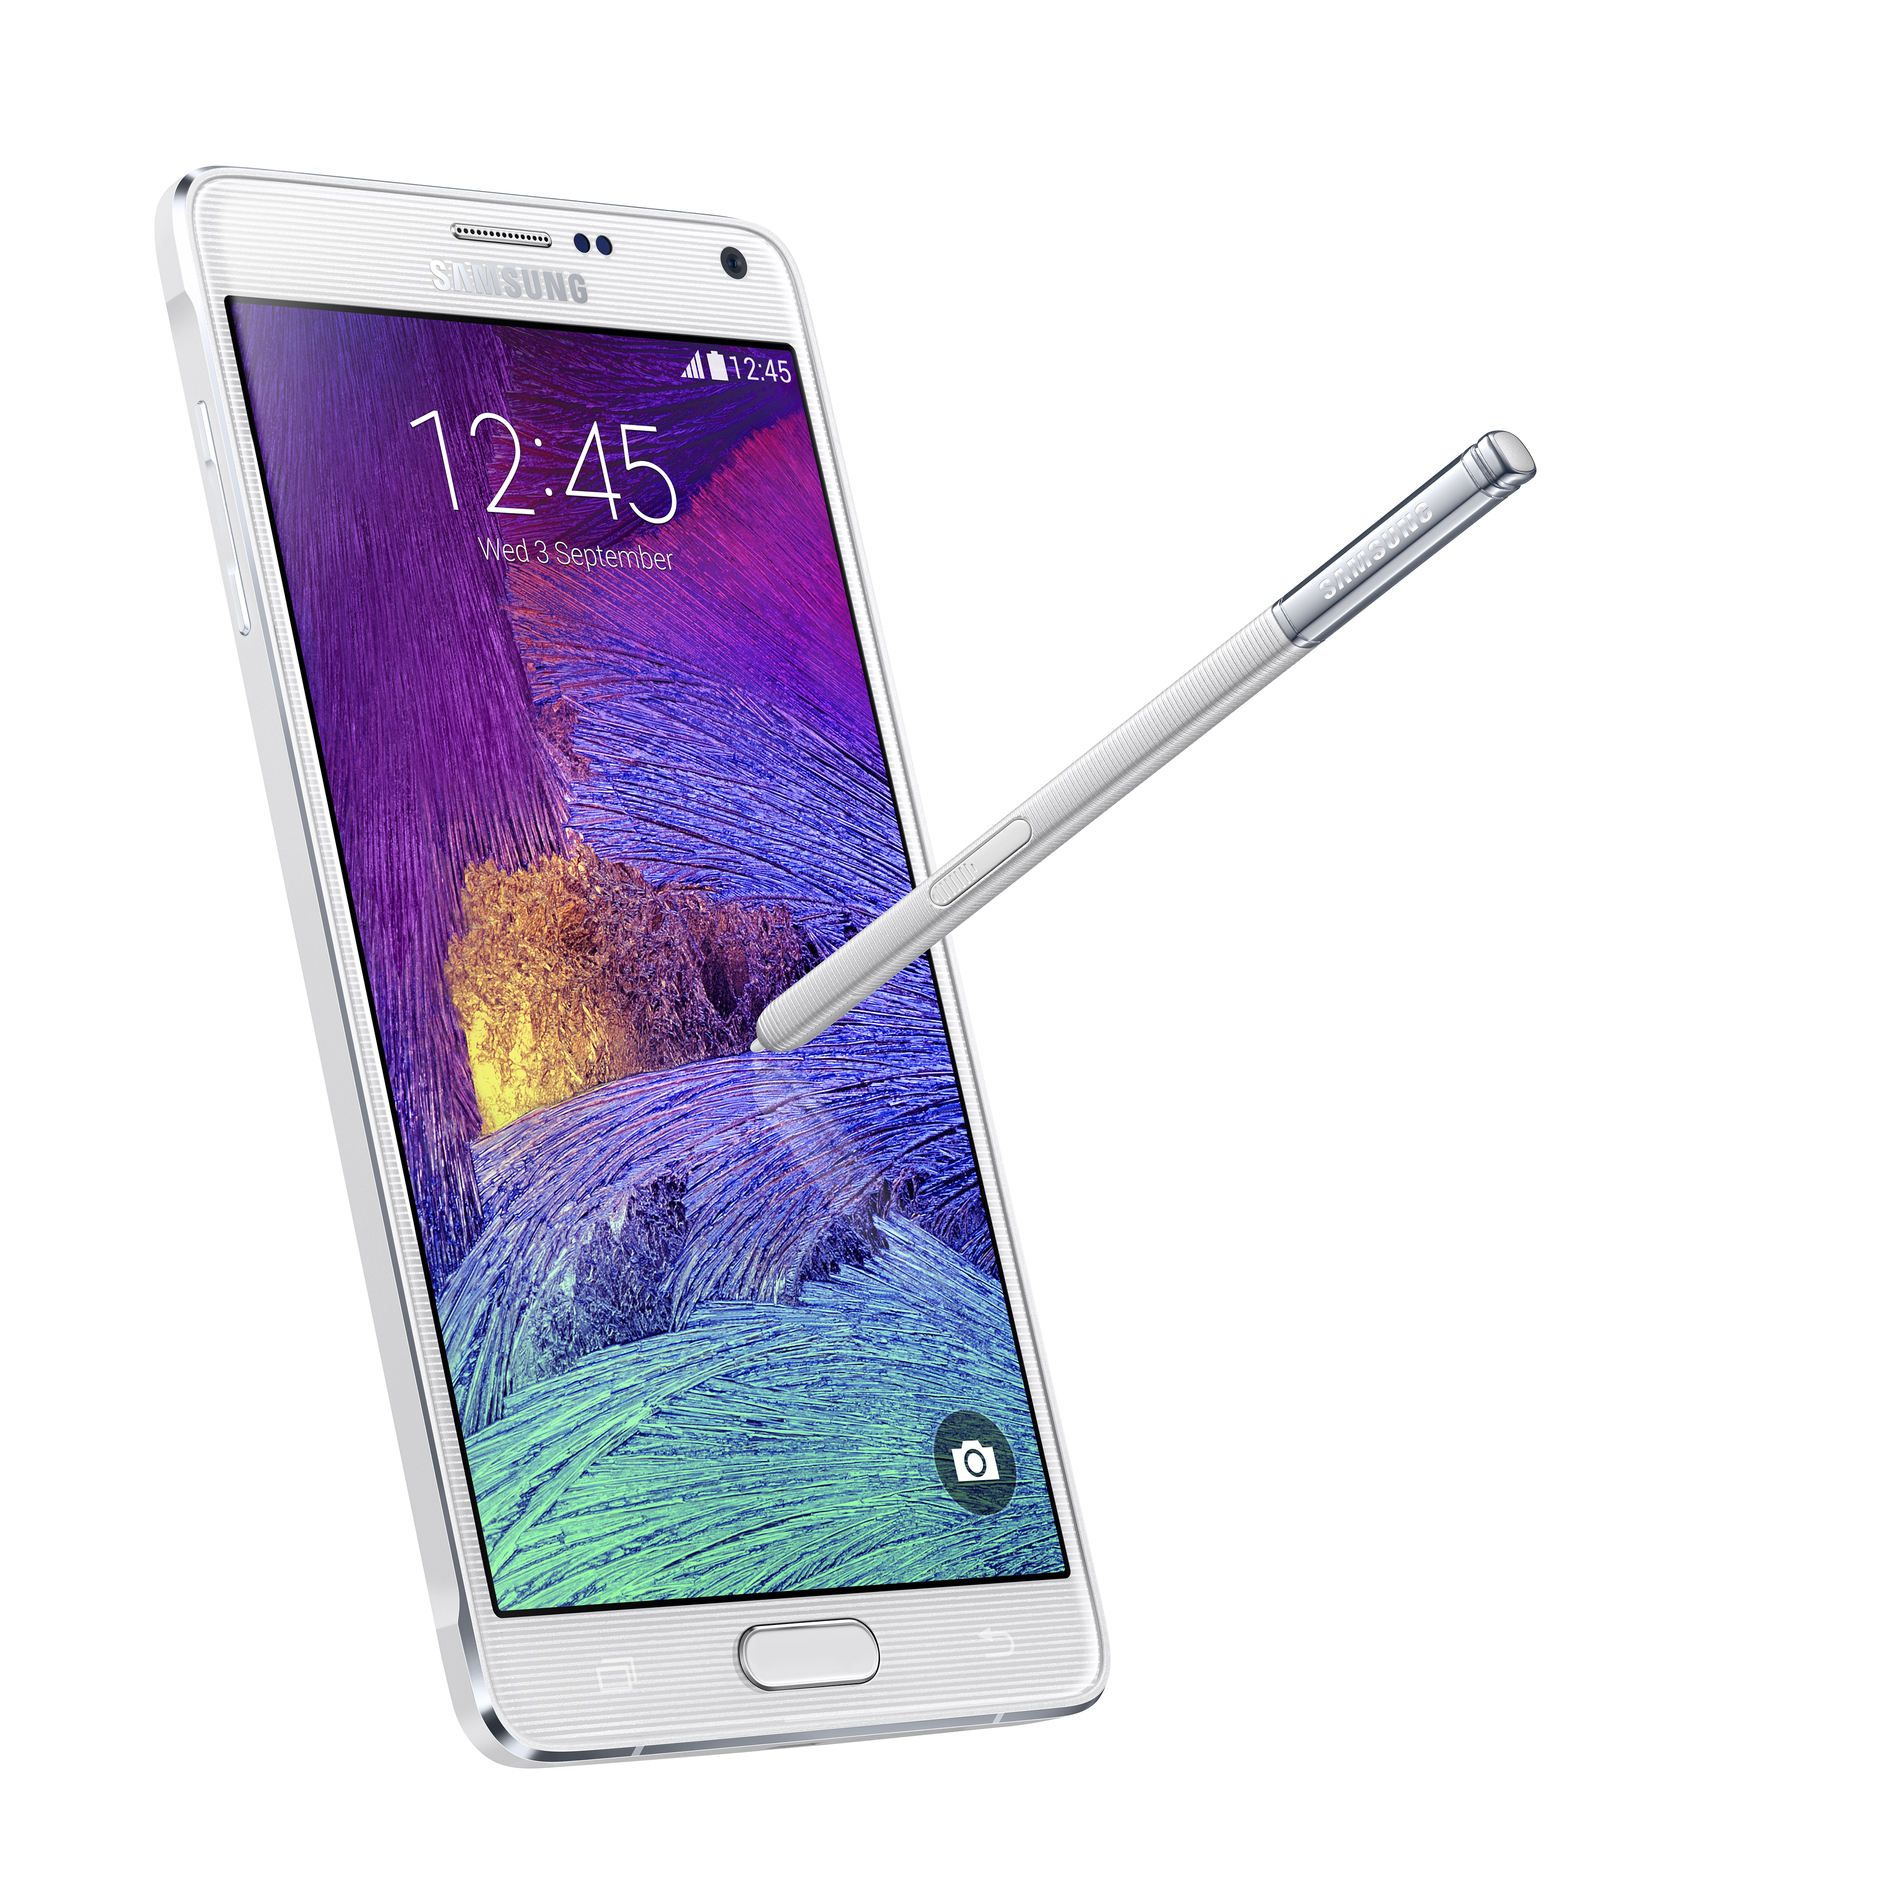 Samsung Galaxy Note 4 U S Price Release Dates Verizon Sprint At T T Mobile Best Buy Galaxy Note 4 Samsung Galaxy Note Galaxy Note